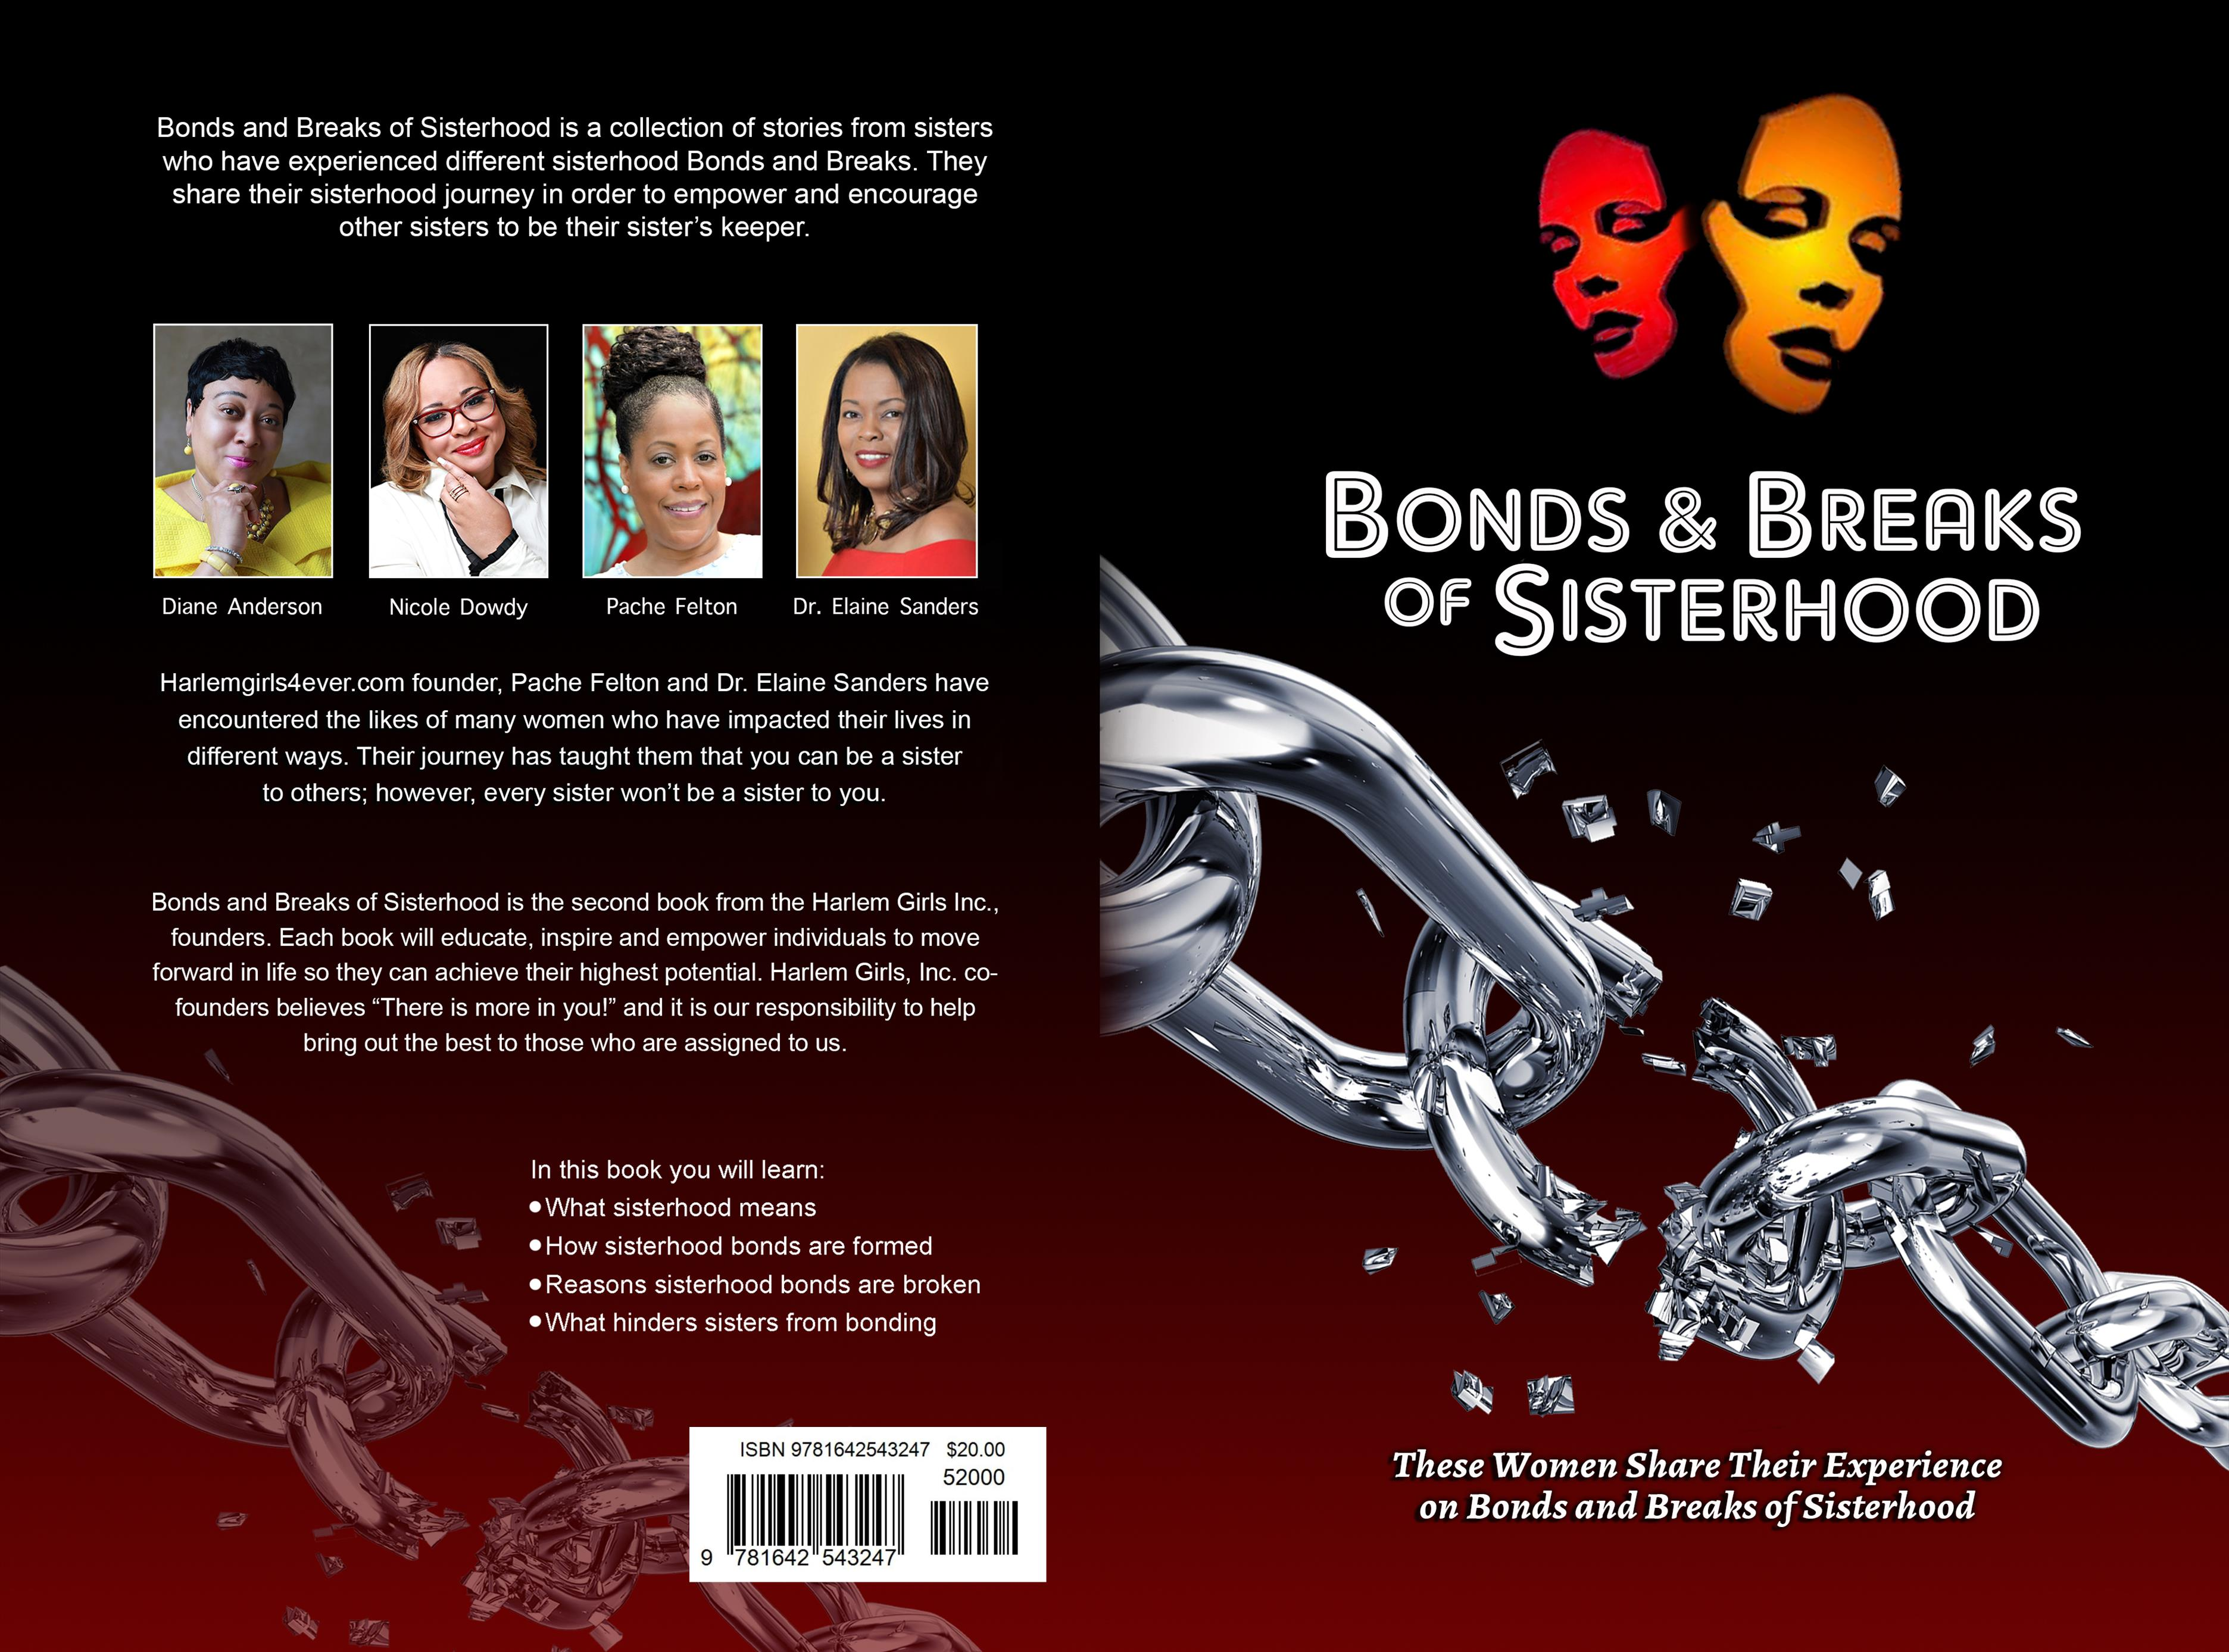 Bonds & Breaks of Sisterhood cover image